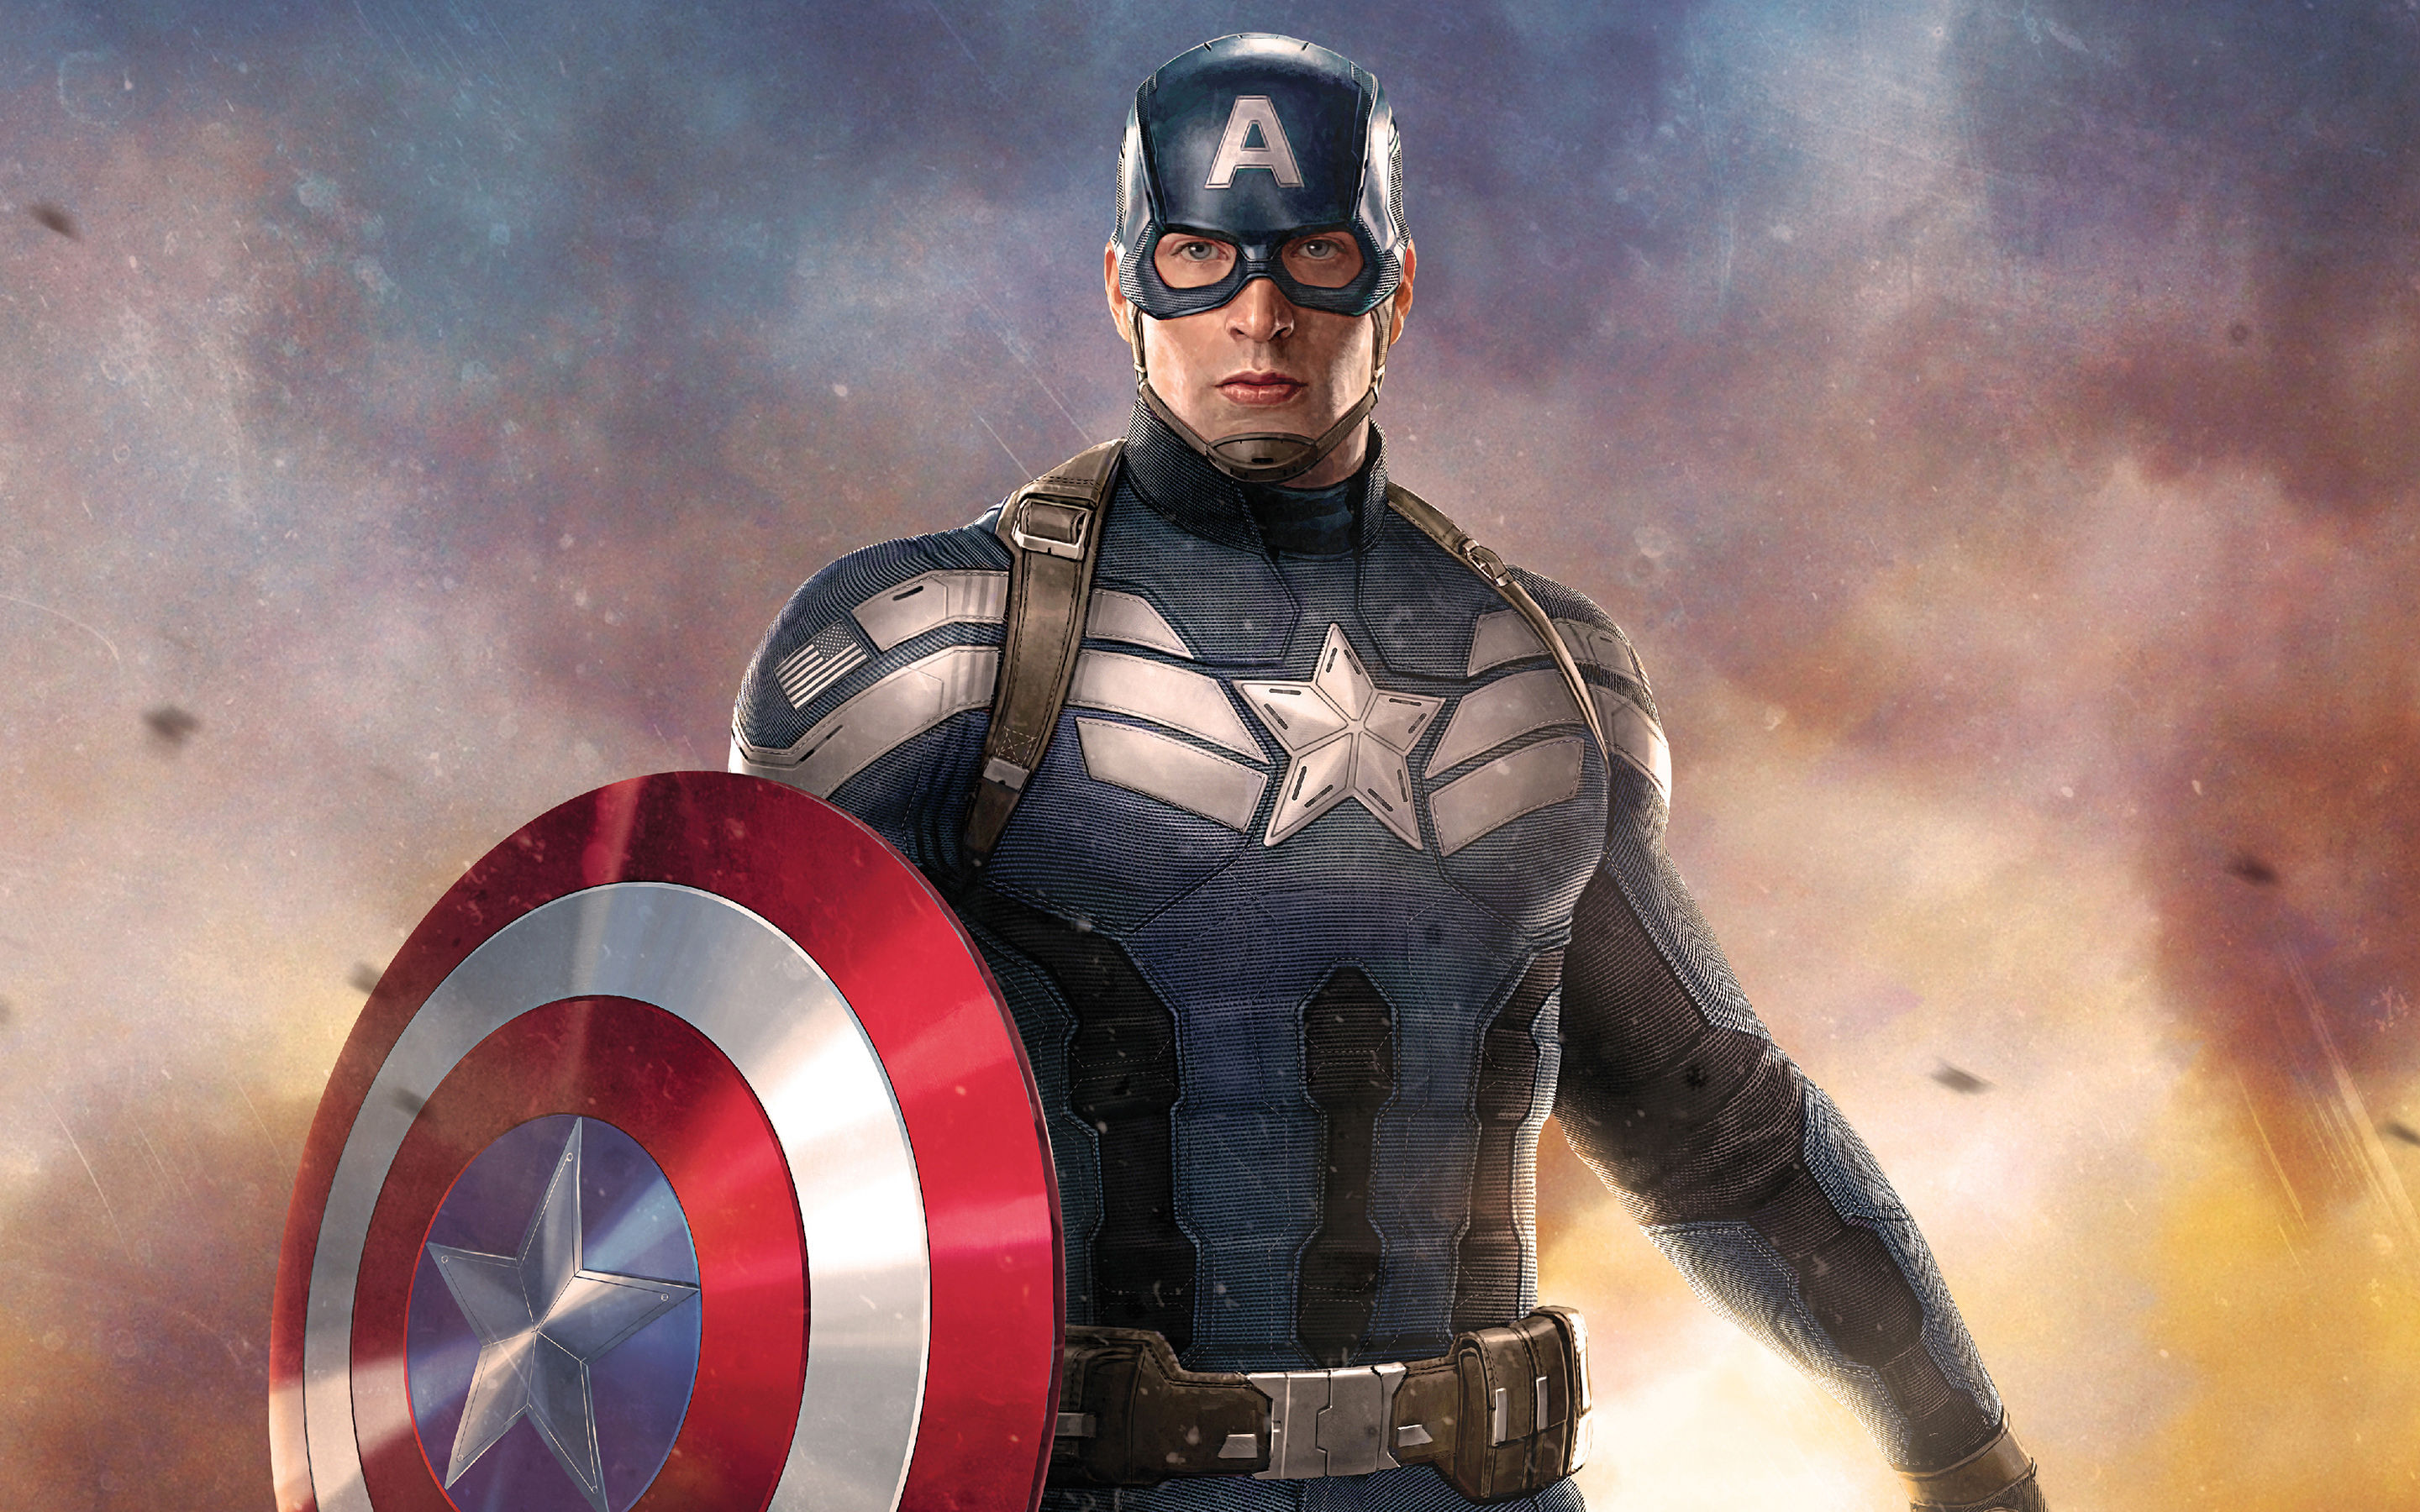 Captain America Holding Shield Hd Superheroes 4k Wallpapers